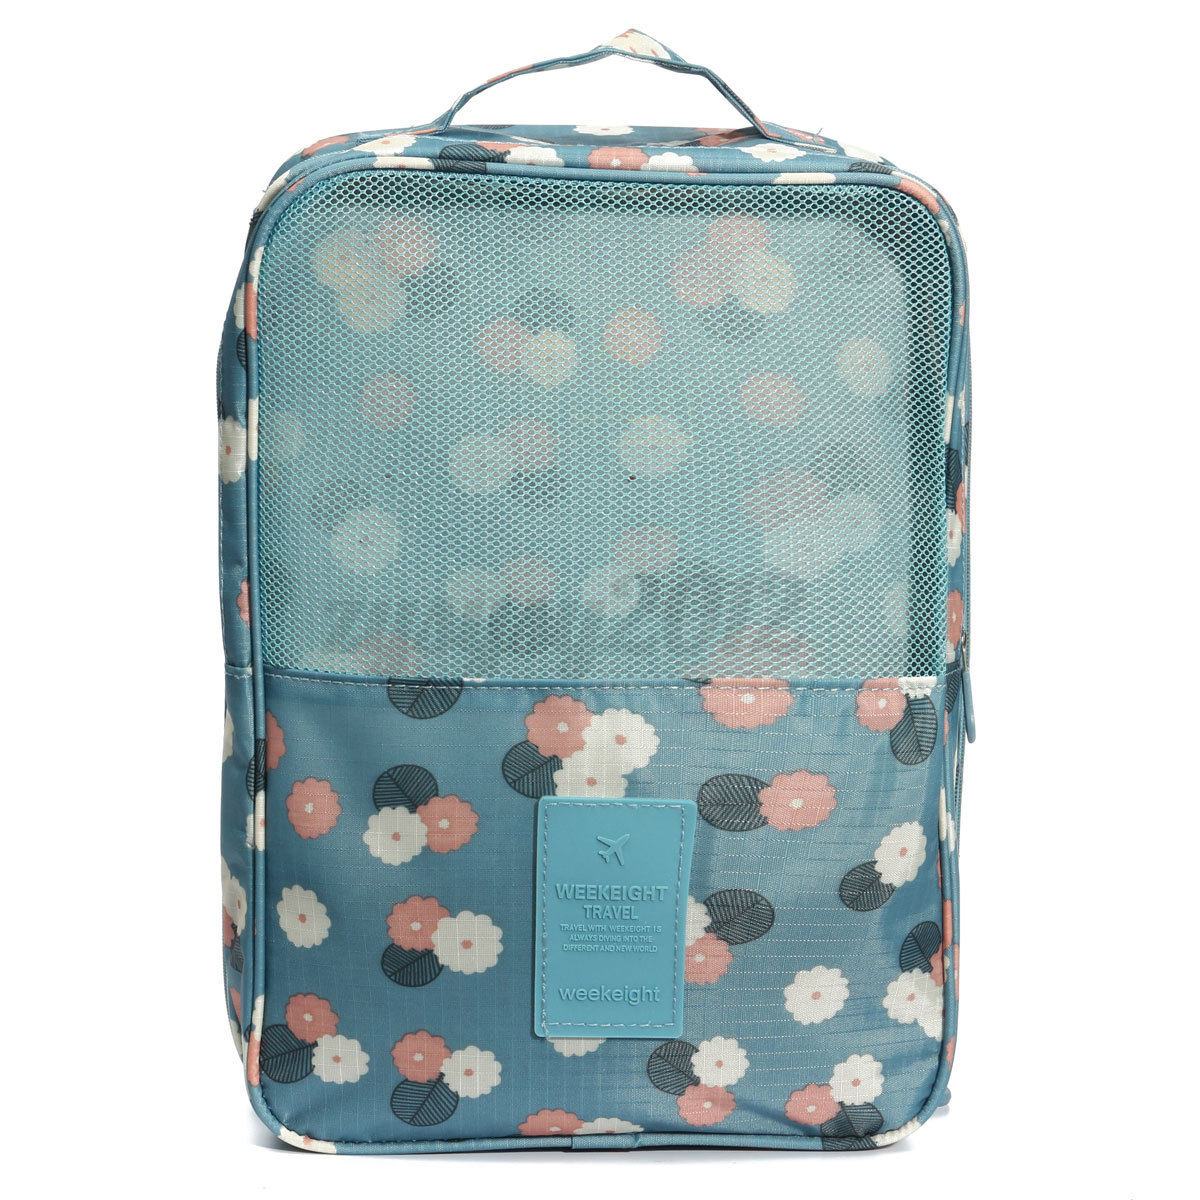 Sac chaussures trousse rangement stockage voyage - Sac rangement chaussures ...